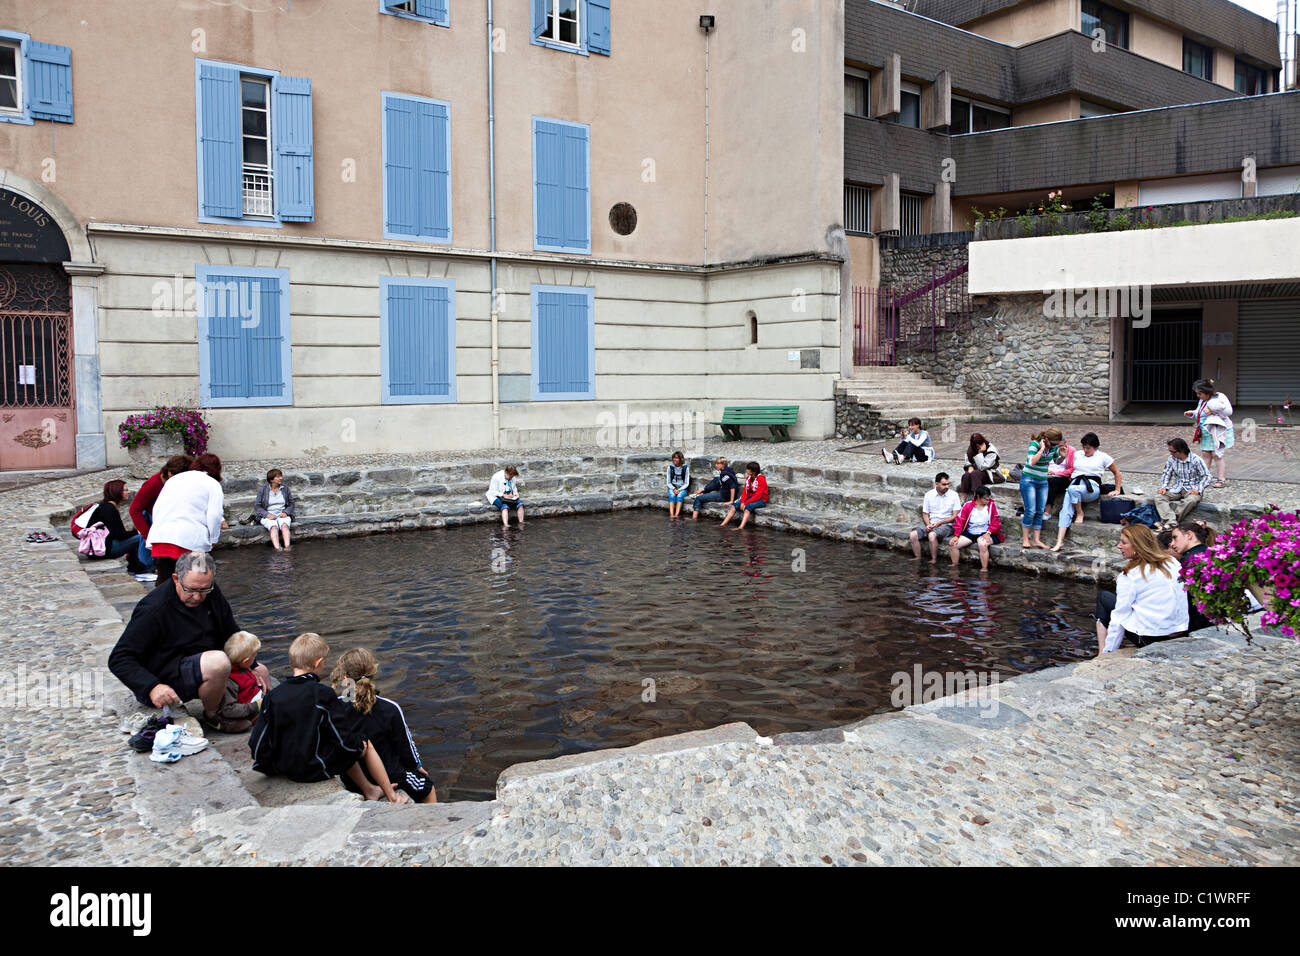 People soaking feet in mineral rich thermal springs in Ax-les-Thermes department Ariege France - Stock Image